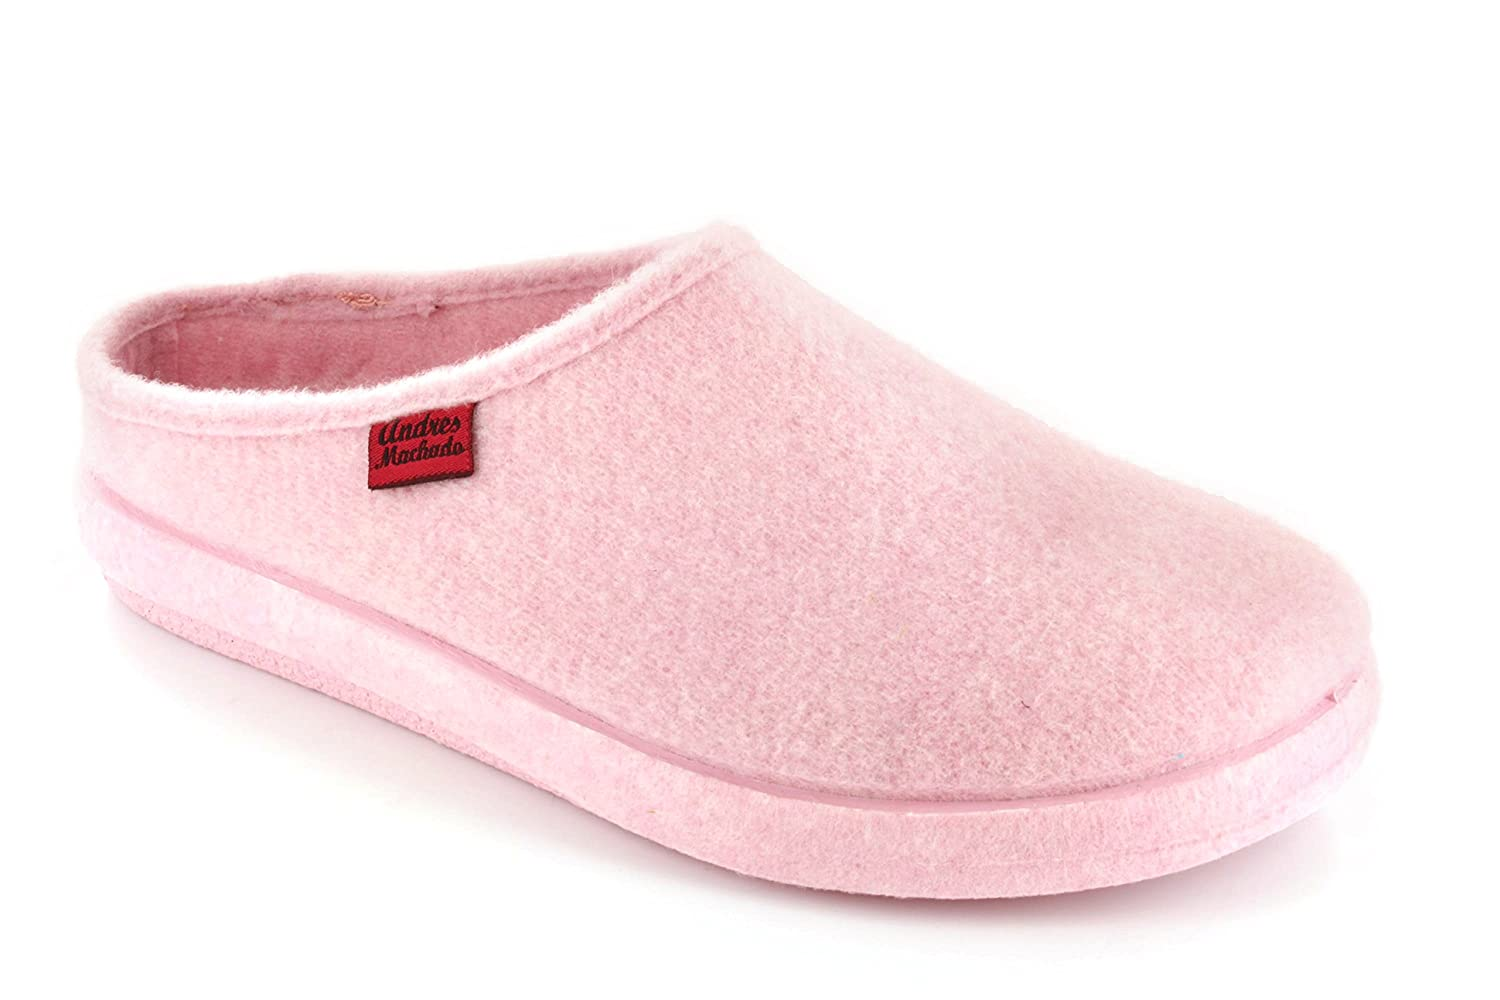 Andres Machado.AM001.AUTHÉNTIQUES chaussons Grandes MADE IN MADE SPAIN Unisex.Petites 6604 et Grandes Pointures. 26/50 Rosa. d1cfda4 - shopssong.space